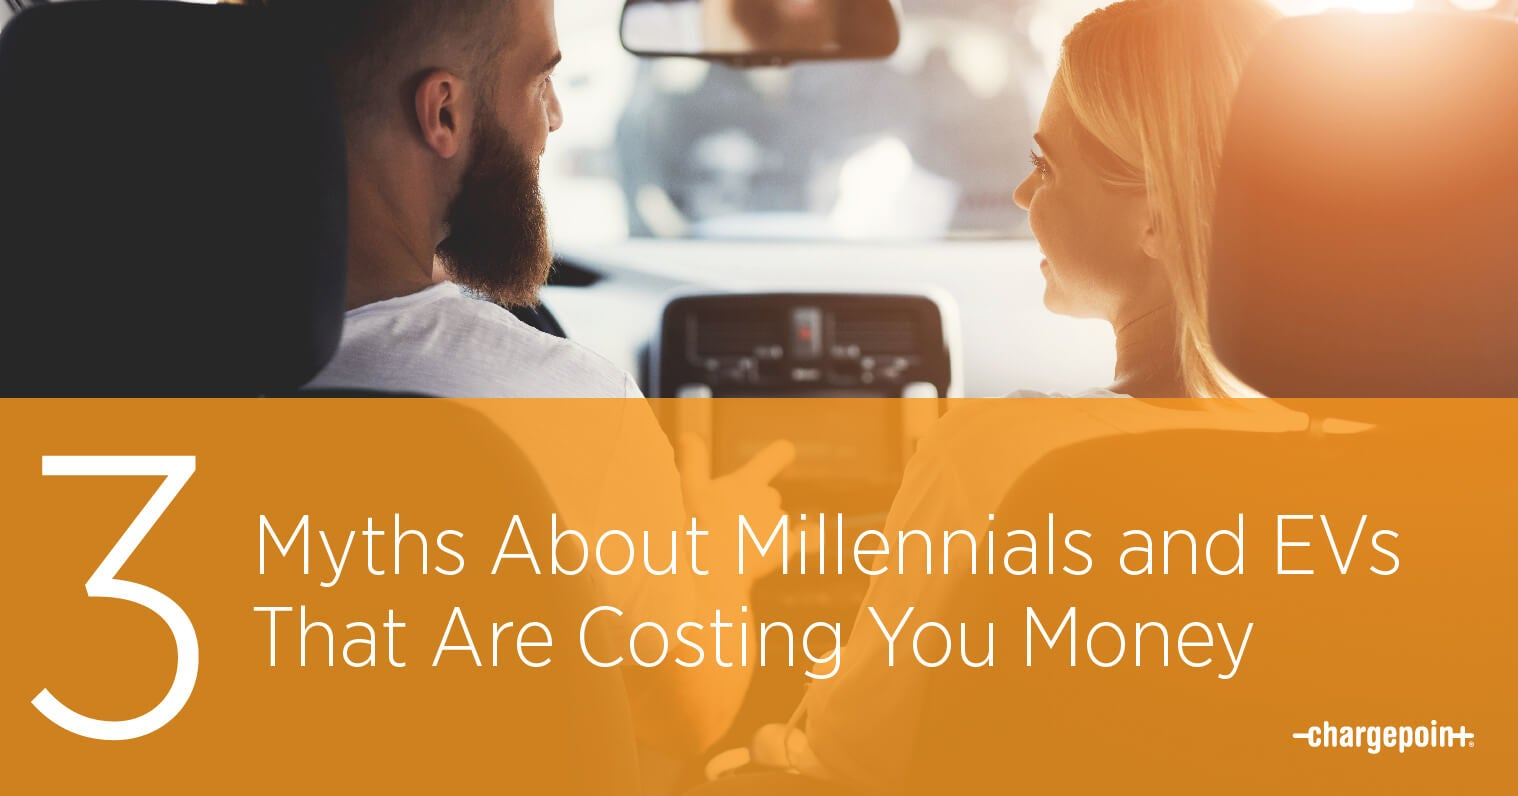 3 Myths About Millennials